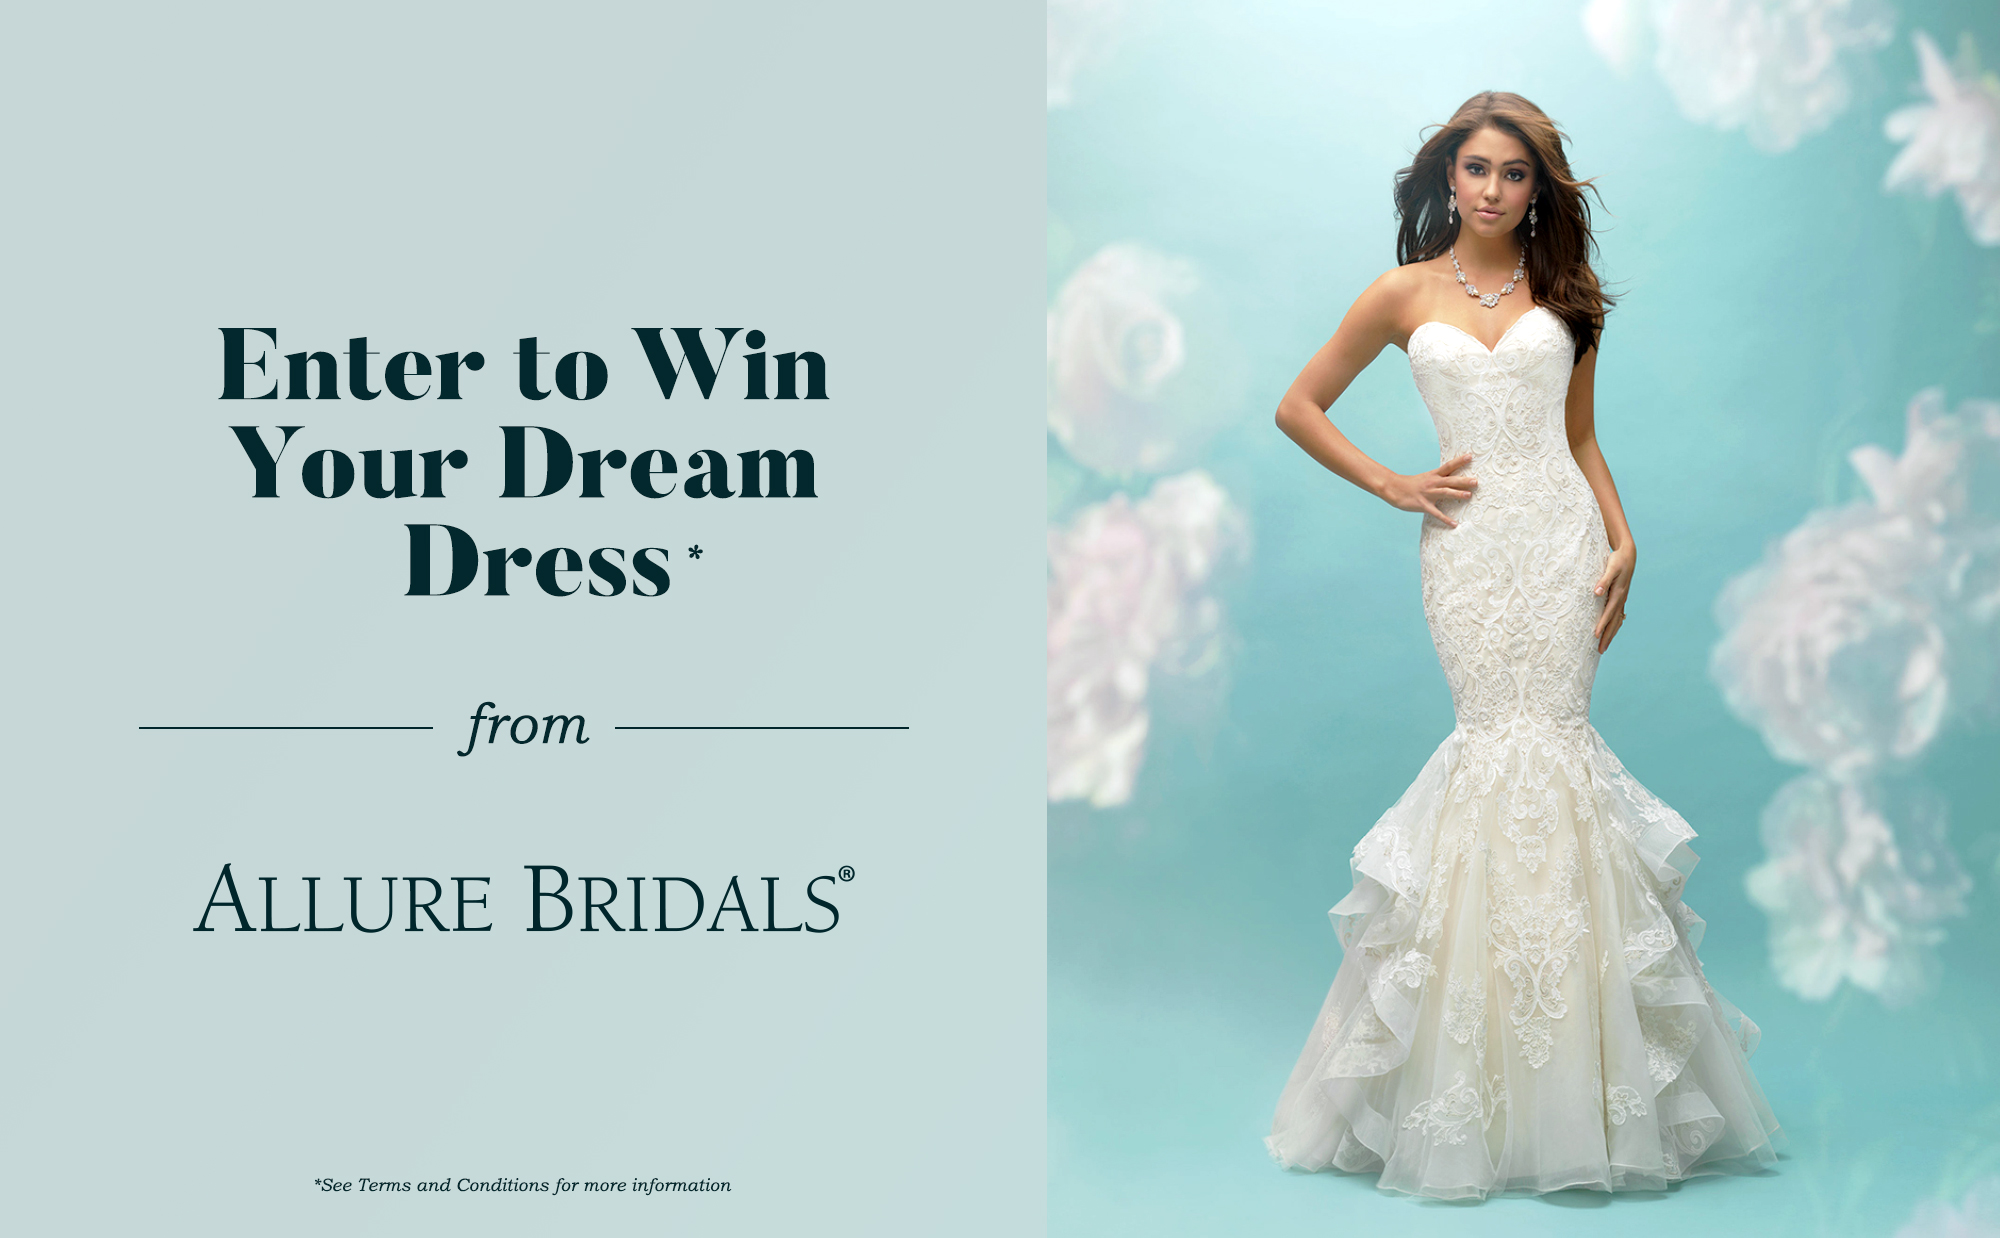 Enter to Win a Wedding Dress from Allure Bridals! - BridalPulse